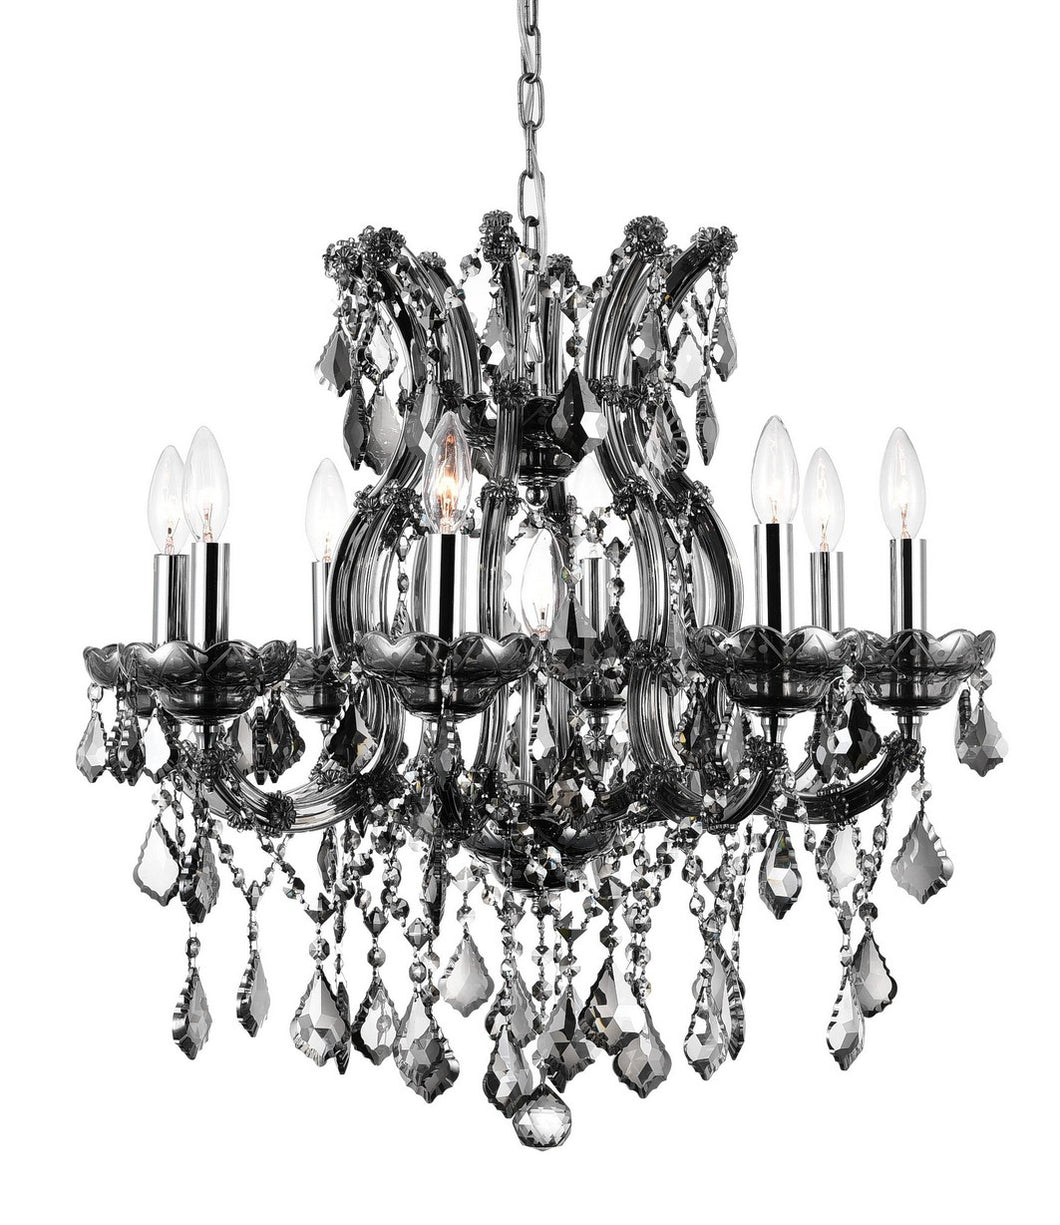 9 LIGHT UP CHANDELIER WITH CHROME FINISH - Dream art Gallery